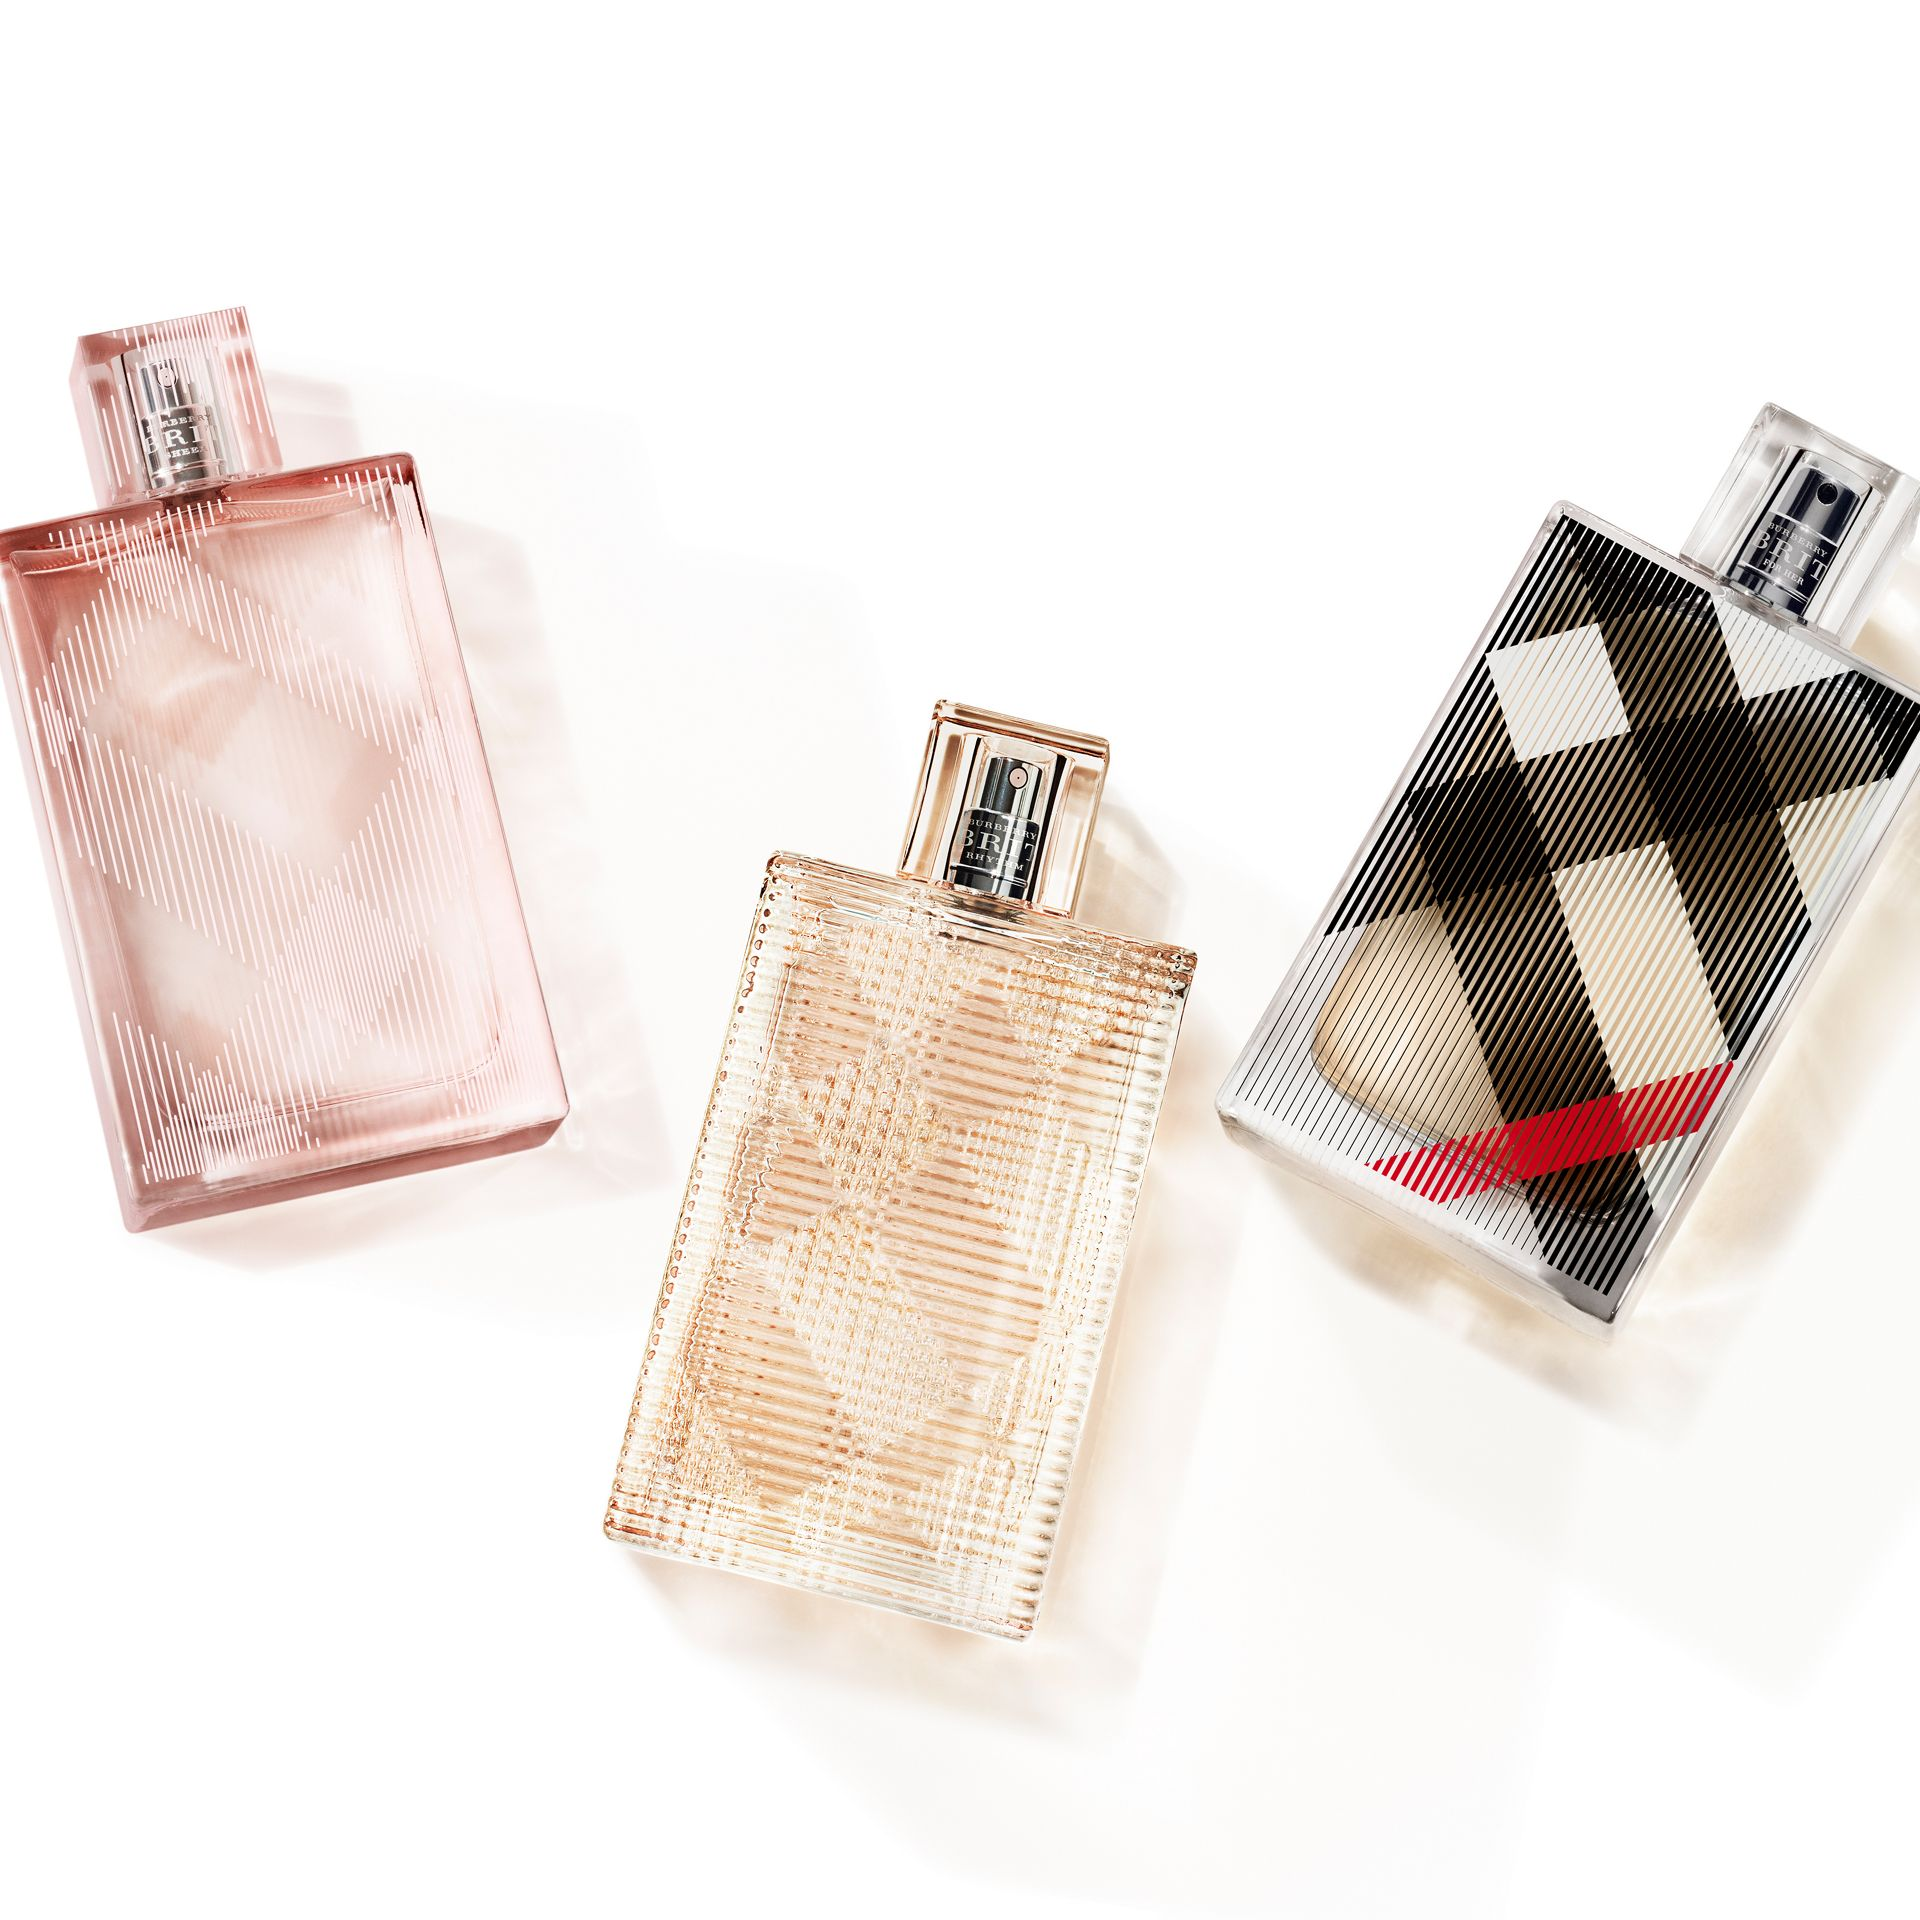 Eau de Toilette Burberry Brit Sheer 100 ml - photo de la galerie 3